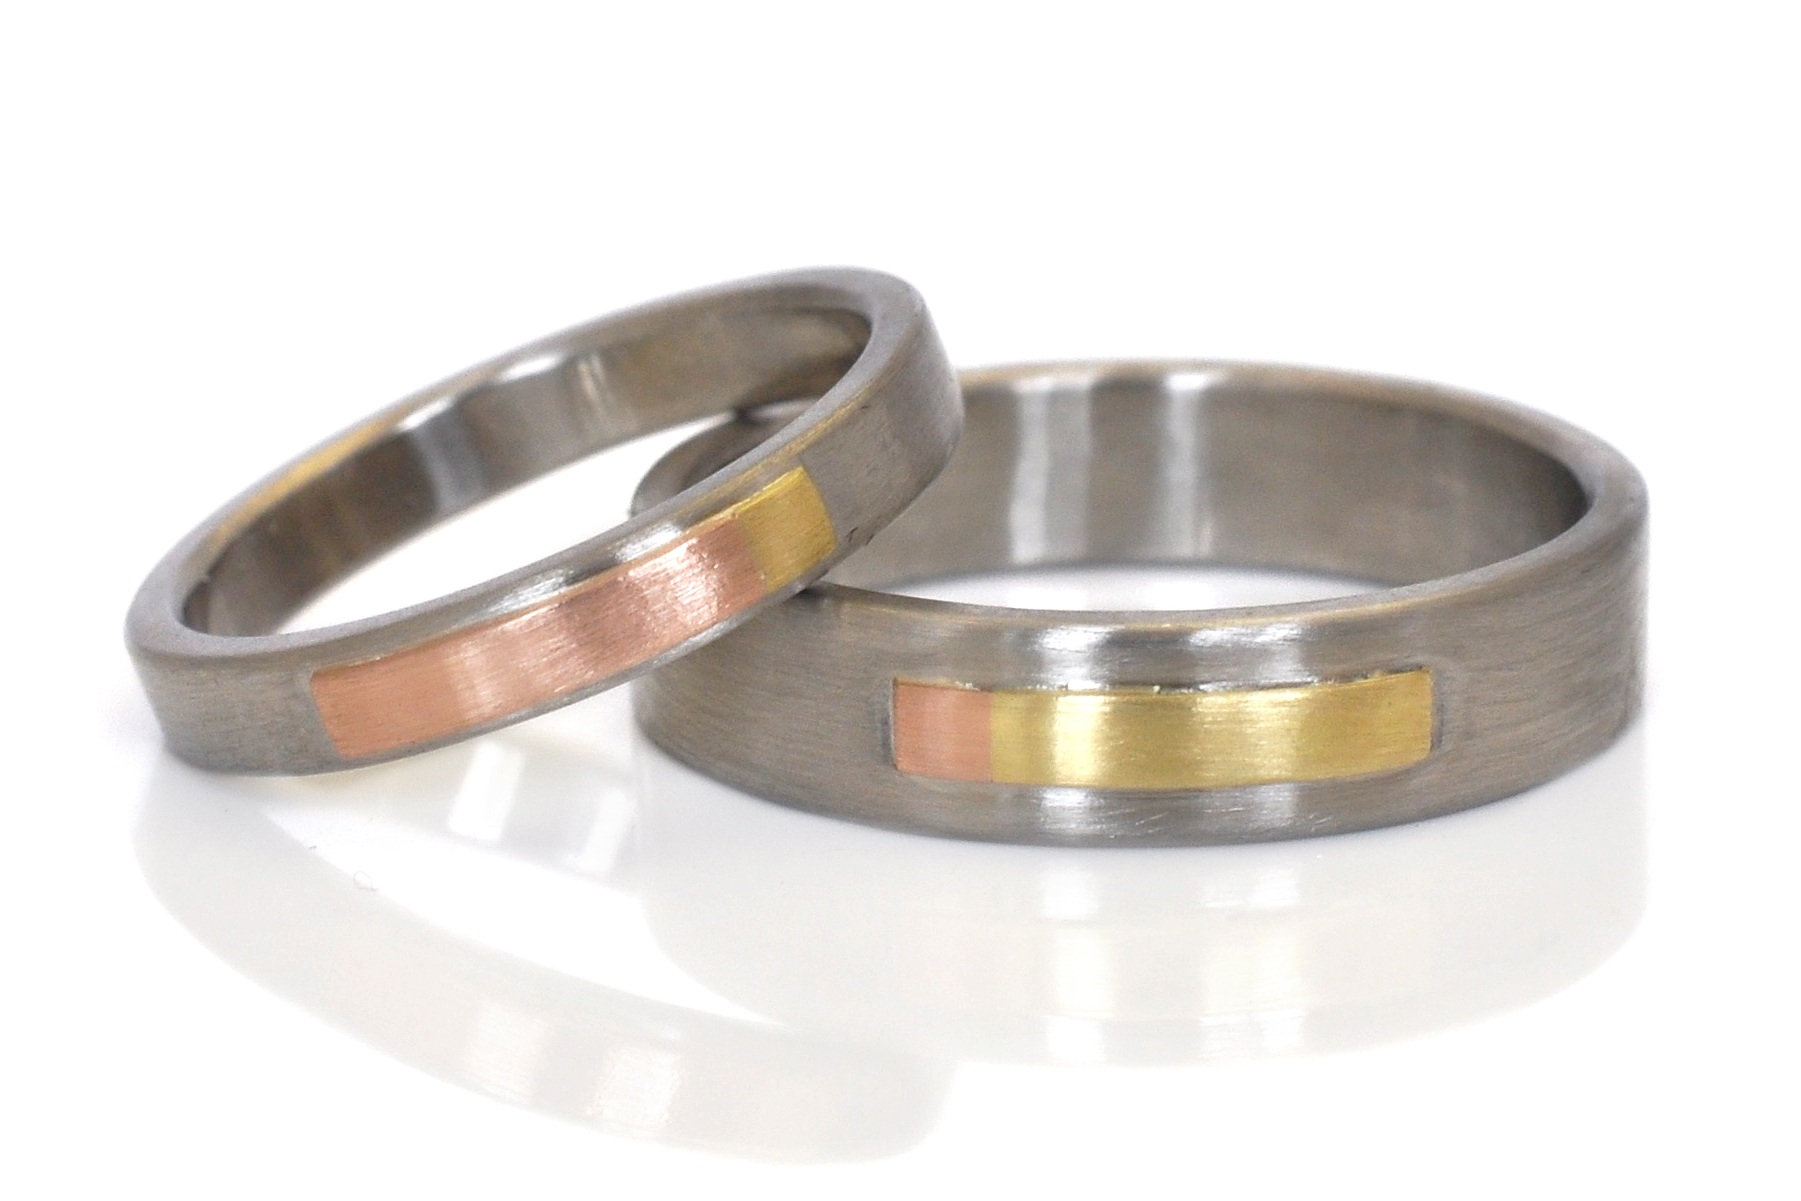 Custom complimentary wedding bands in mixed metals of 500 palladium, 14k red gold and 18k yellow gold with a sleek satin finish.  I love the subtle color change at the end of the Rivet strips.